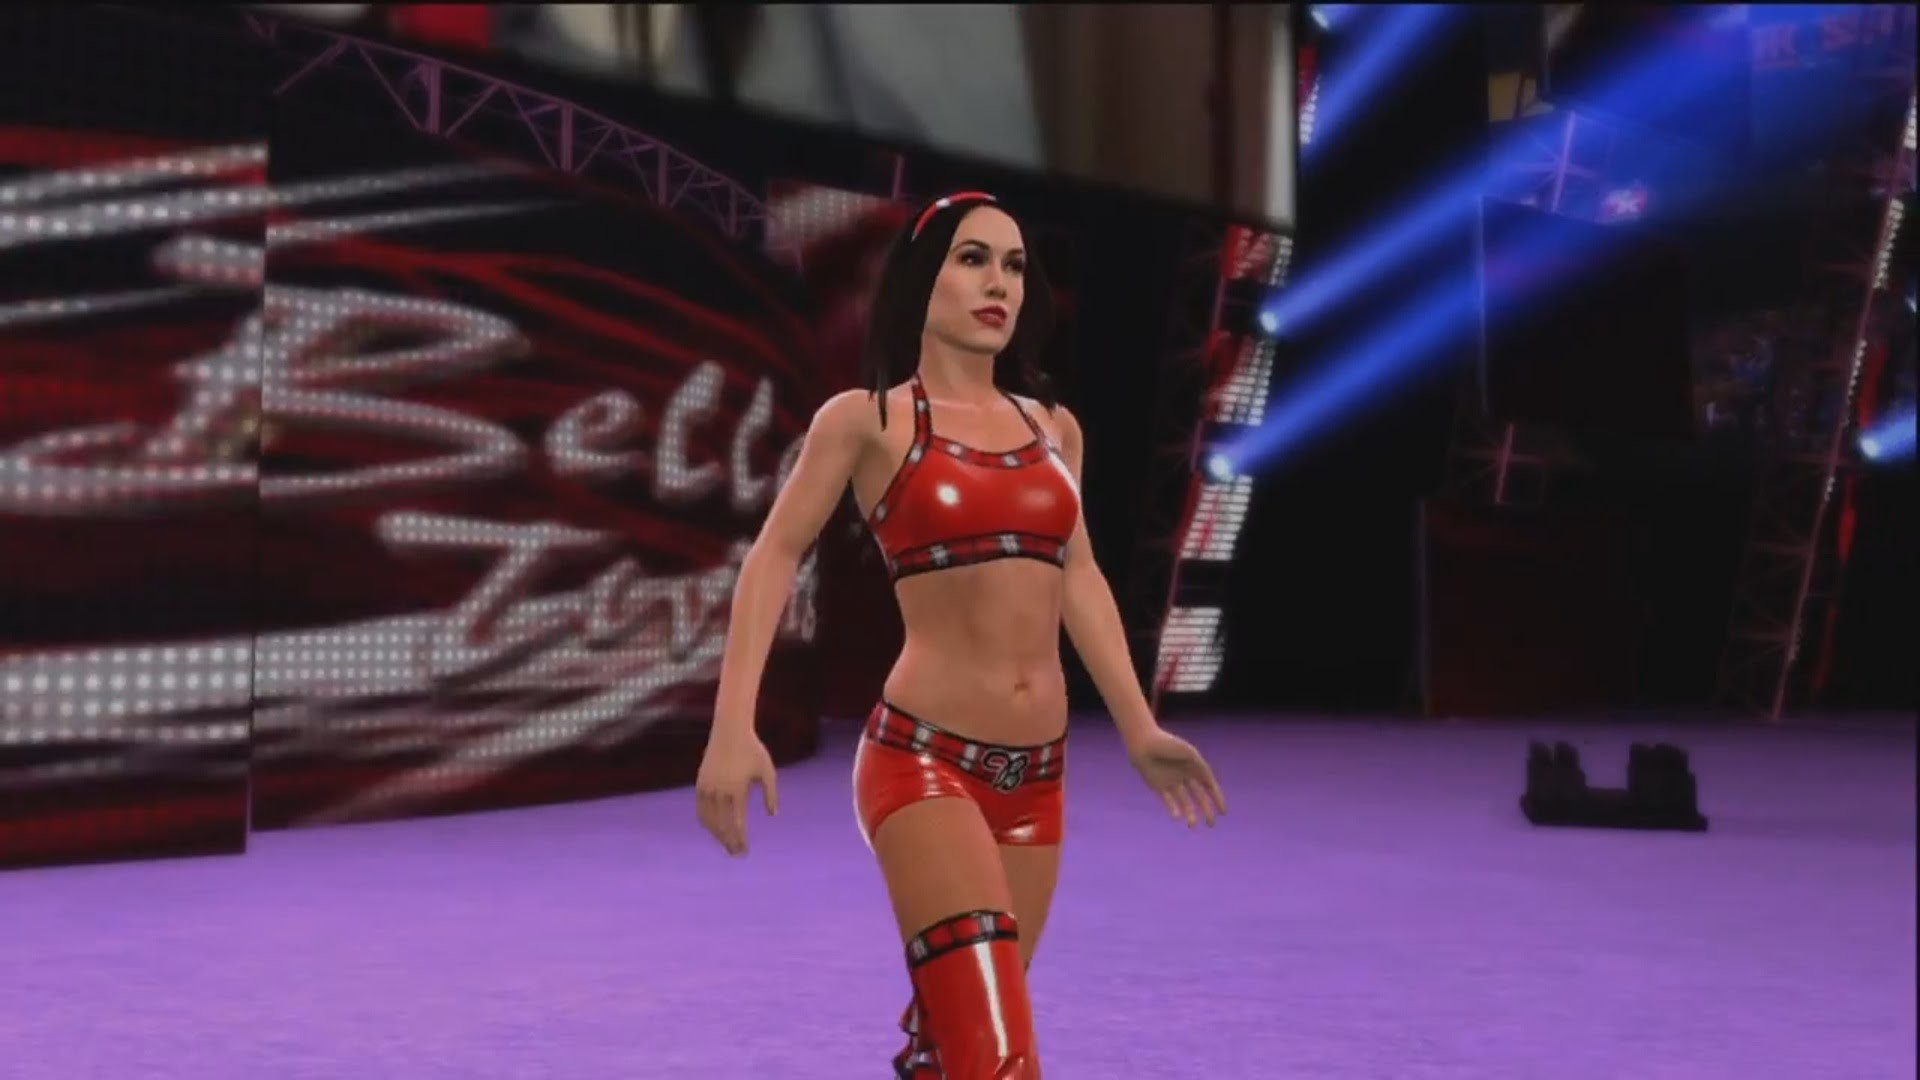 1920x1080 Brie Bella makes her Entrance in WWE 2K15